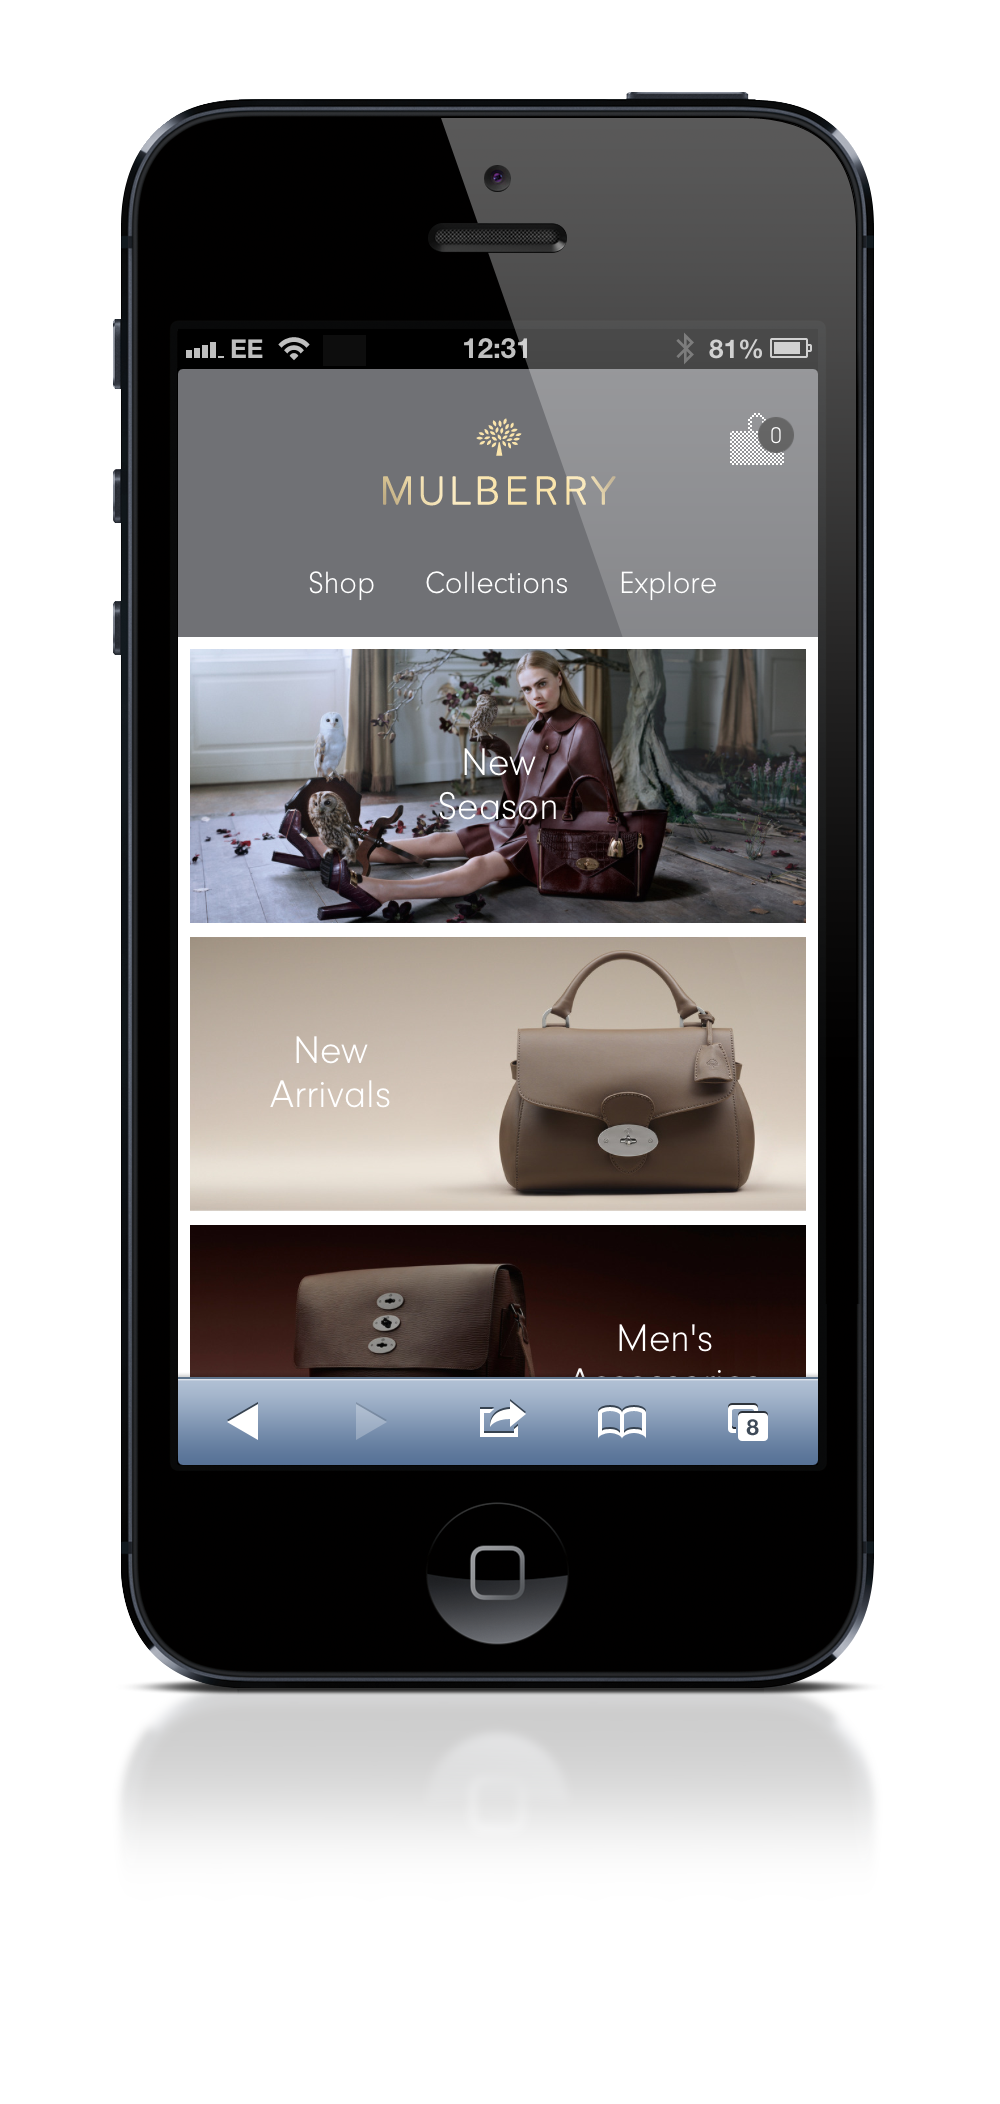 Mulberry homepage on mobile site